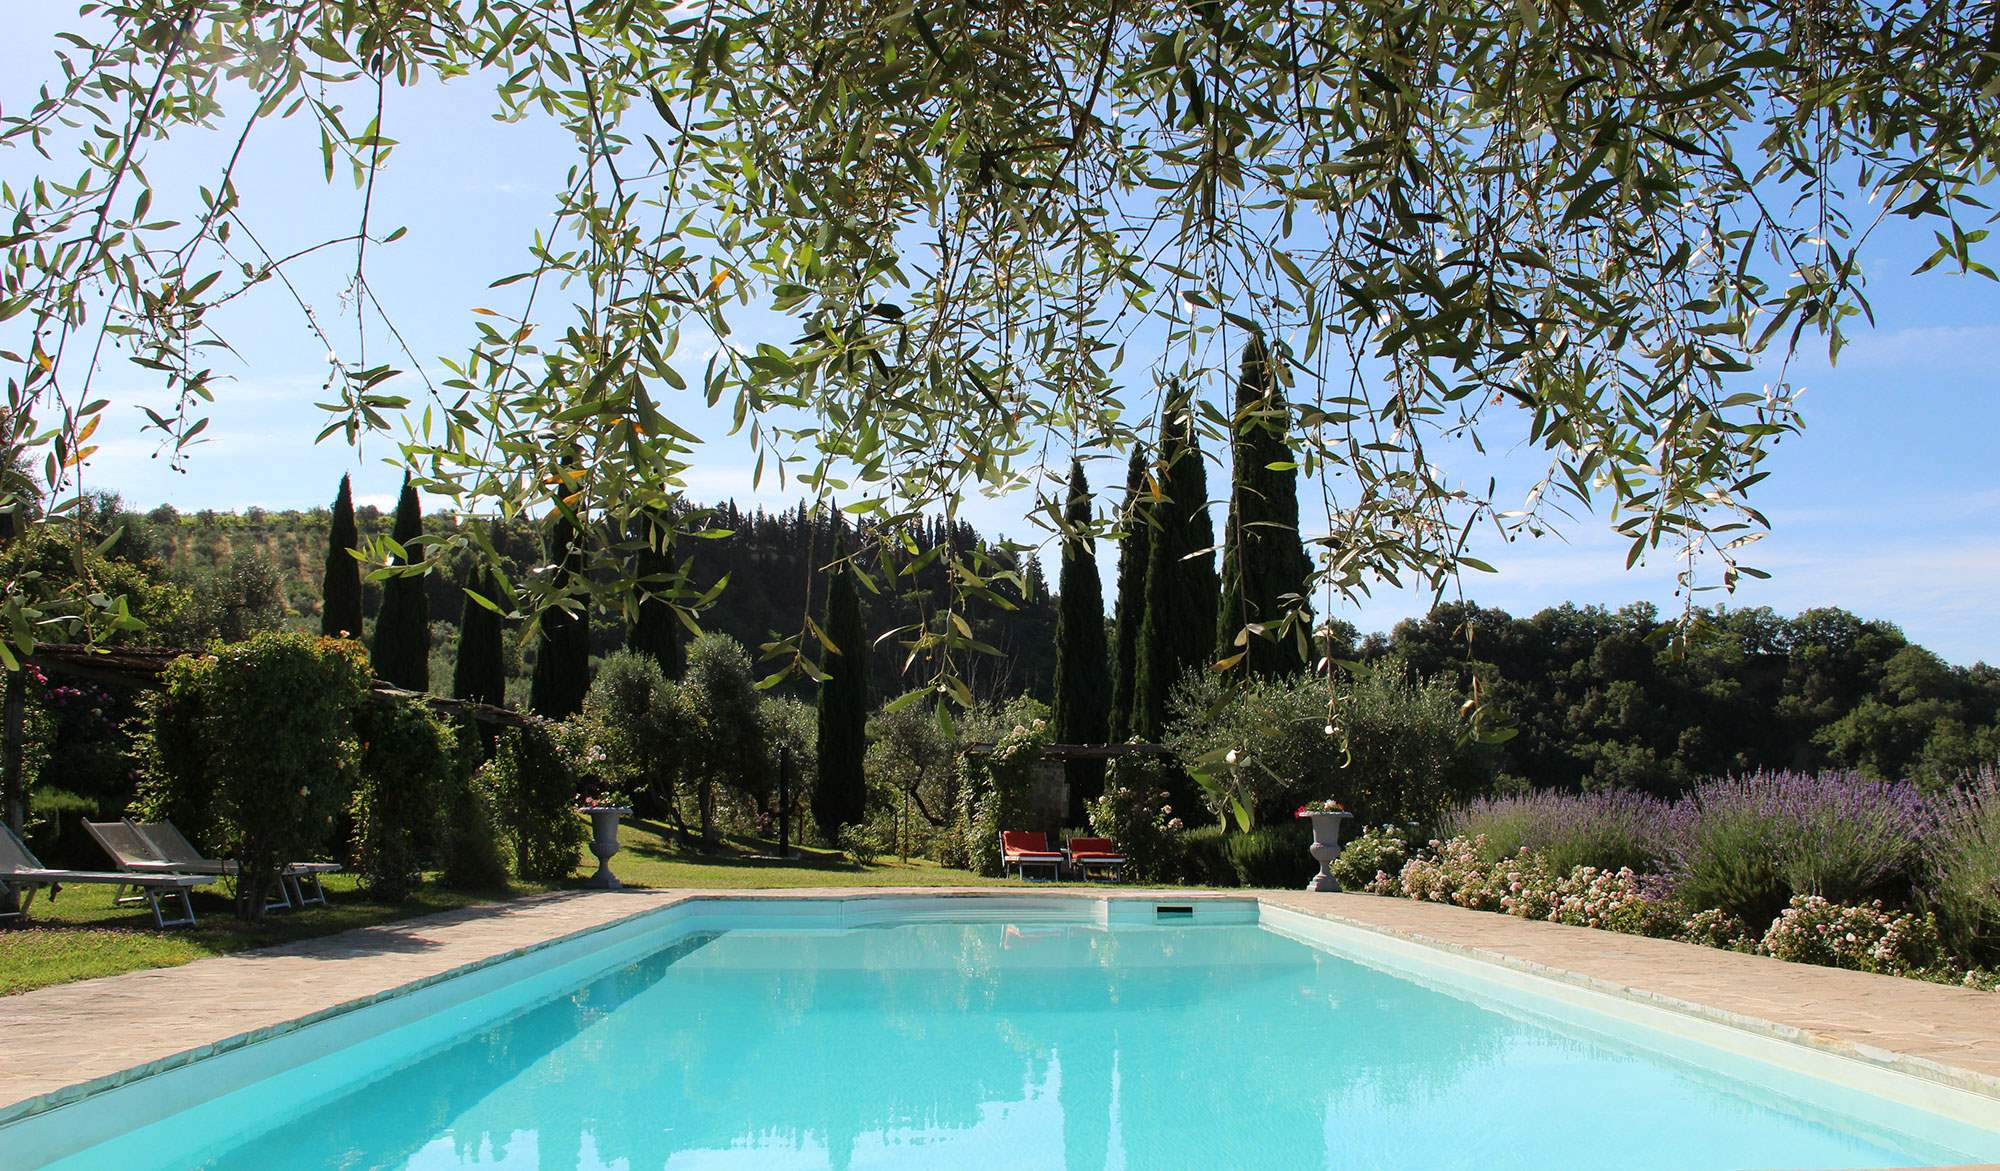 Villa Capanna, 3 bedroom villa in Chianti & Countryside, Tuscany Photo #11